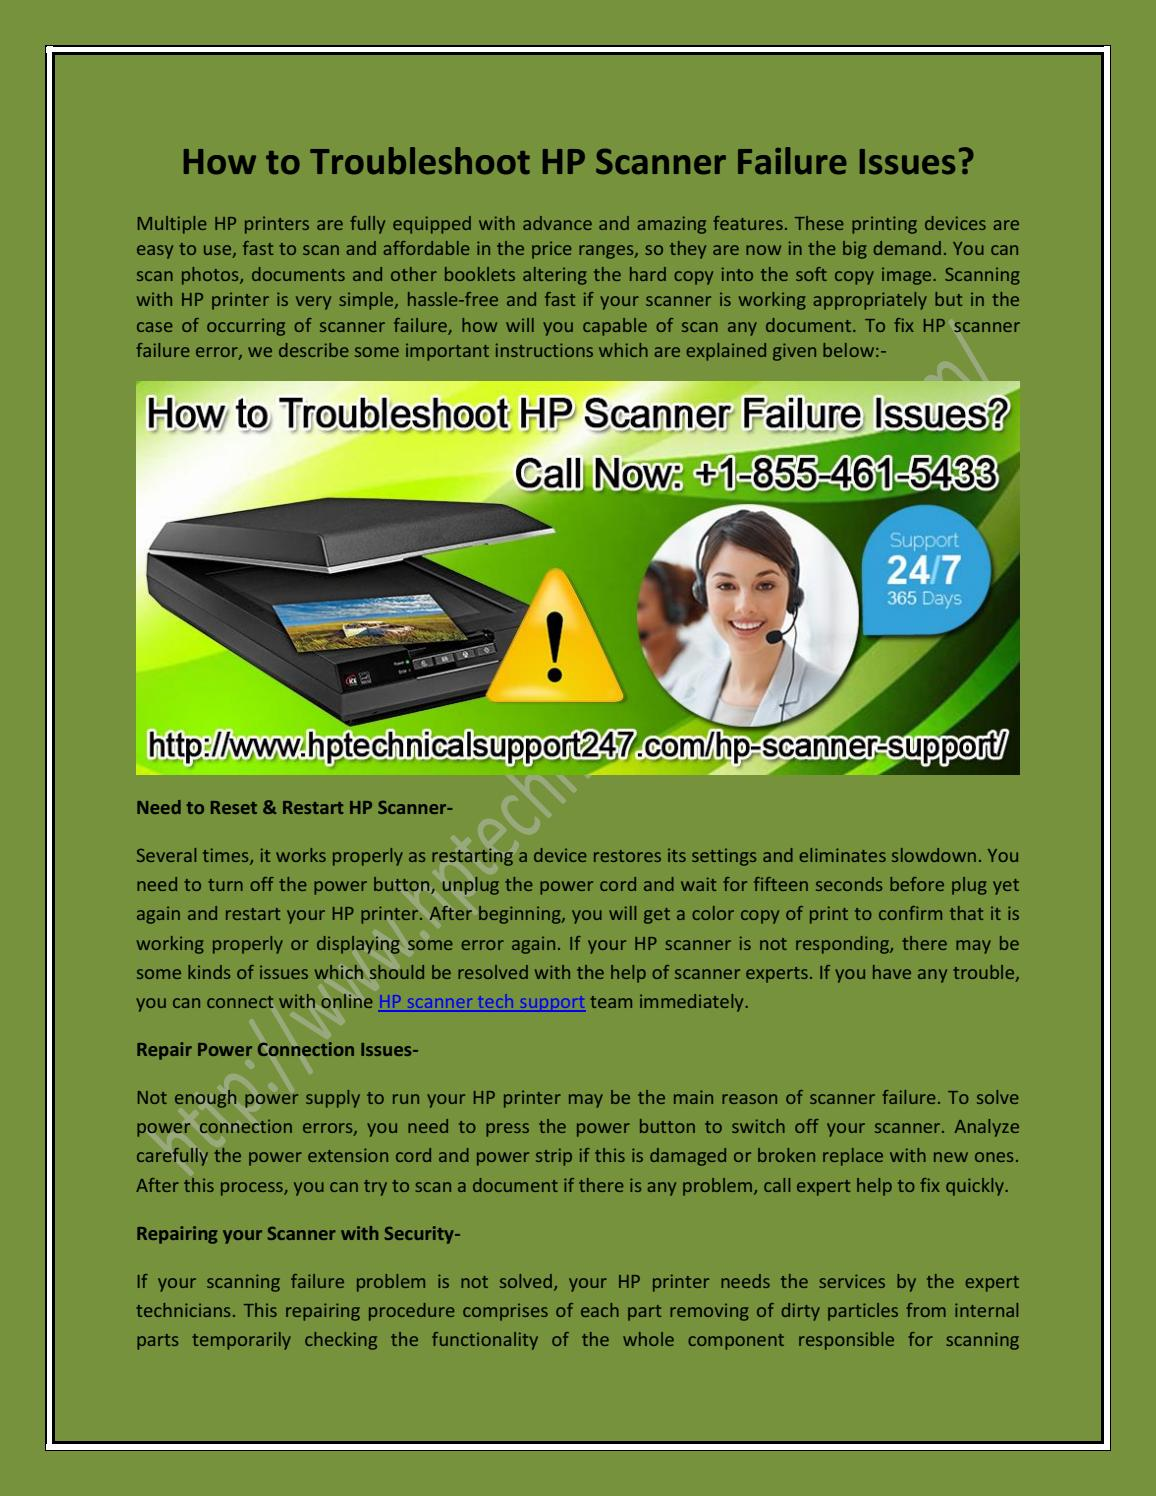 How to Troubleshoot HP Scanner Failure Issues? by HP Technical